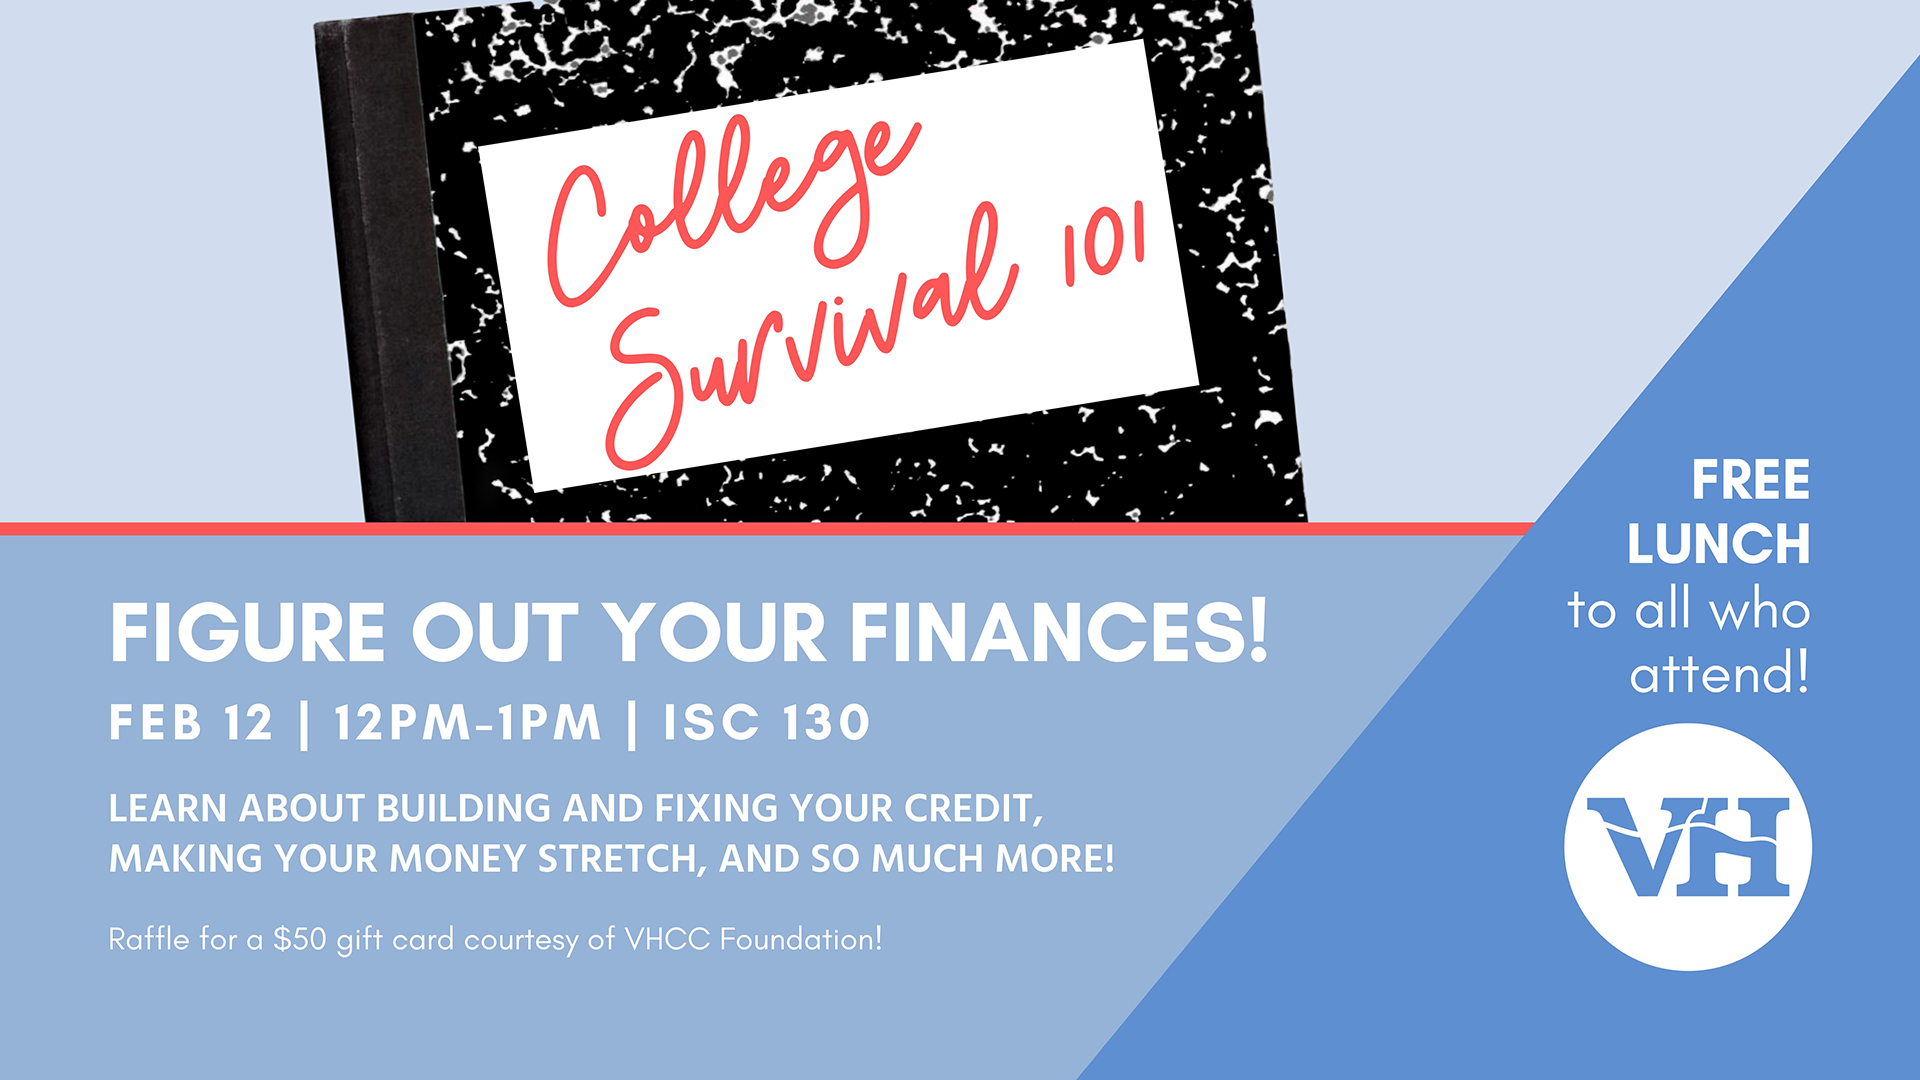 College Survival 101- Figure out your finances! Feb 12 12-1 pm in ISC 130